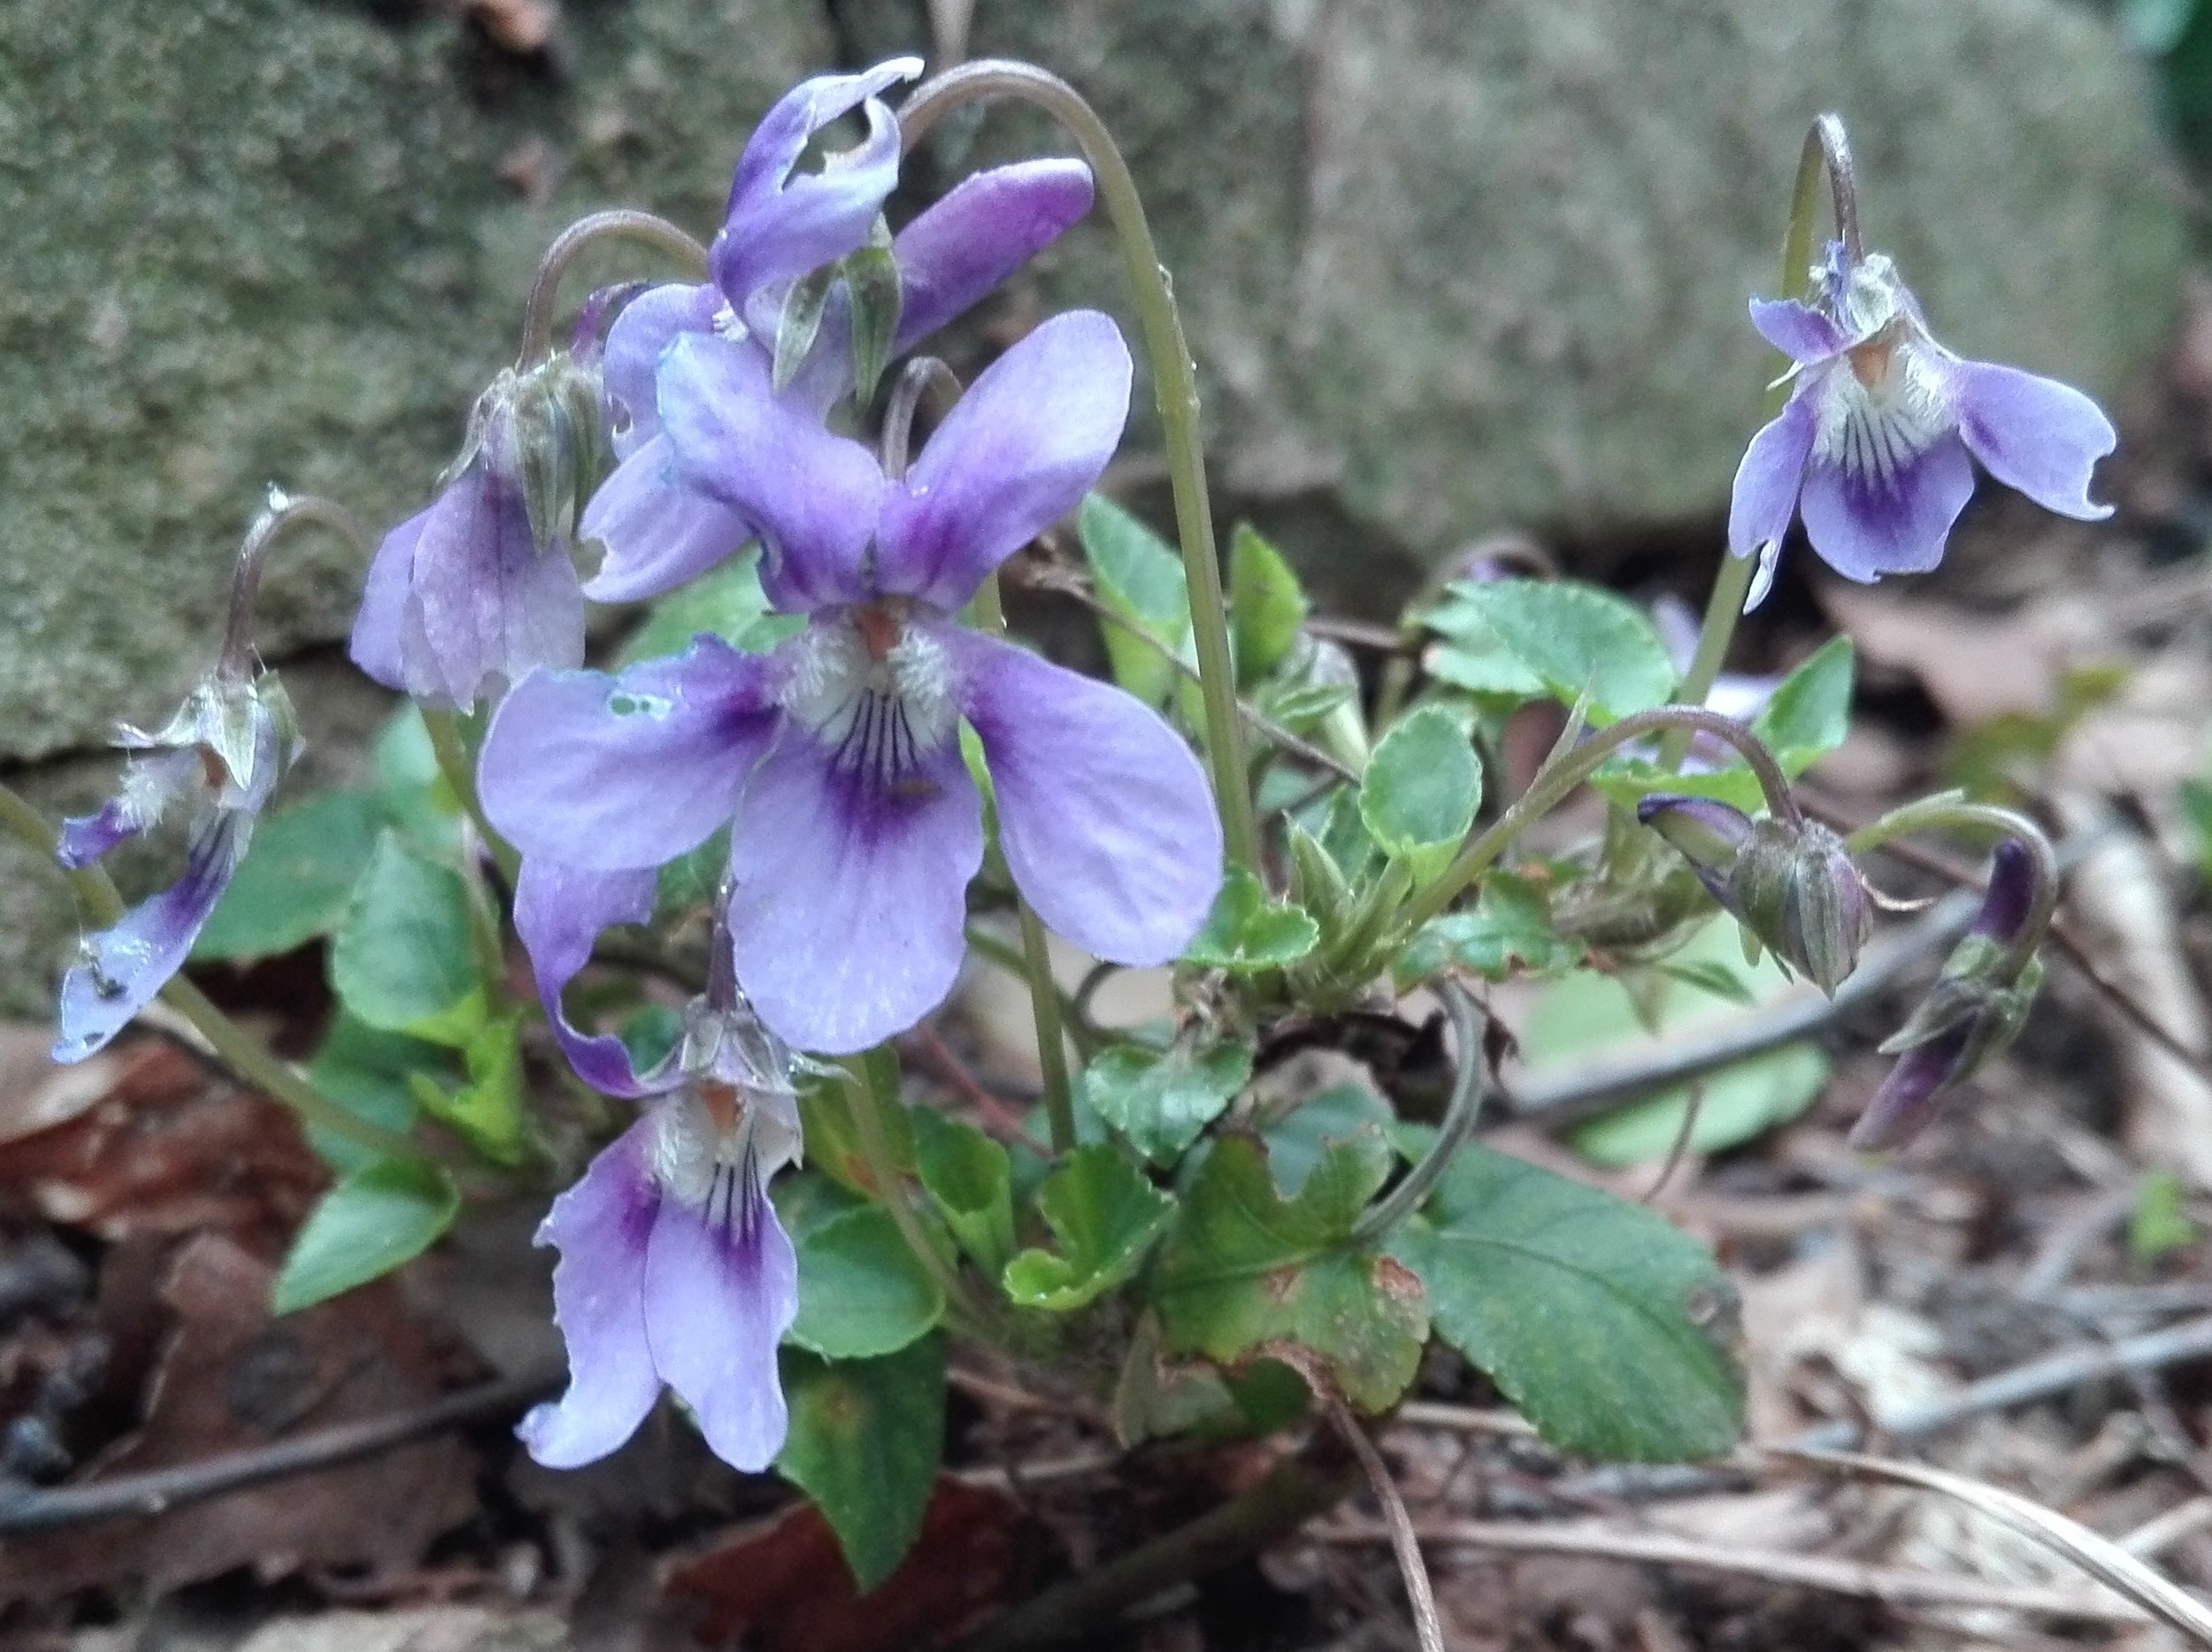 #26 Common Dog Violet (Viola riviniana)